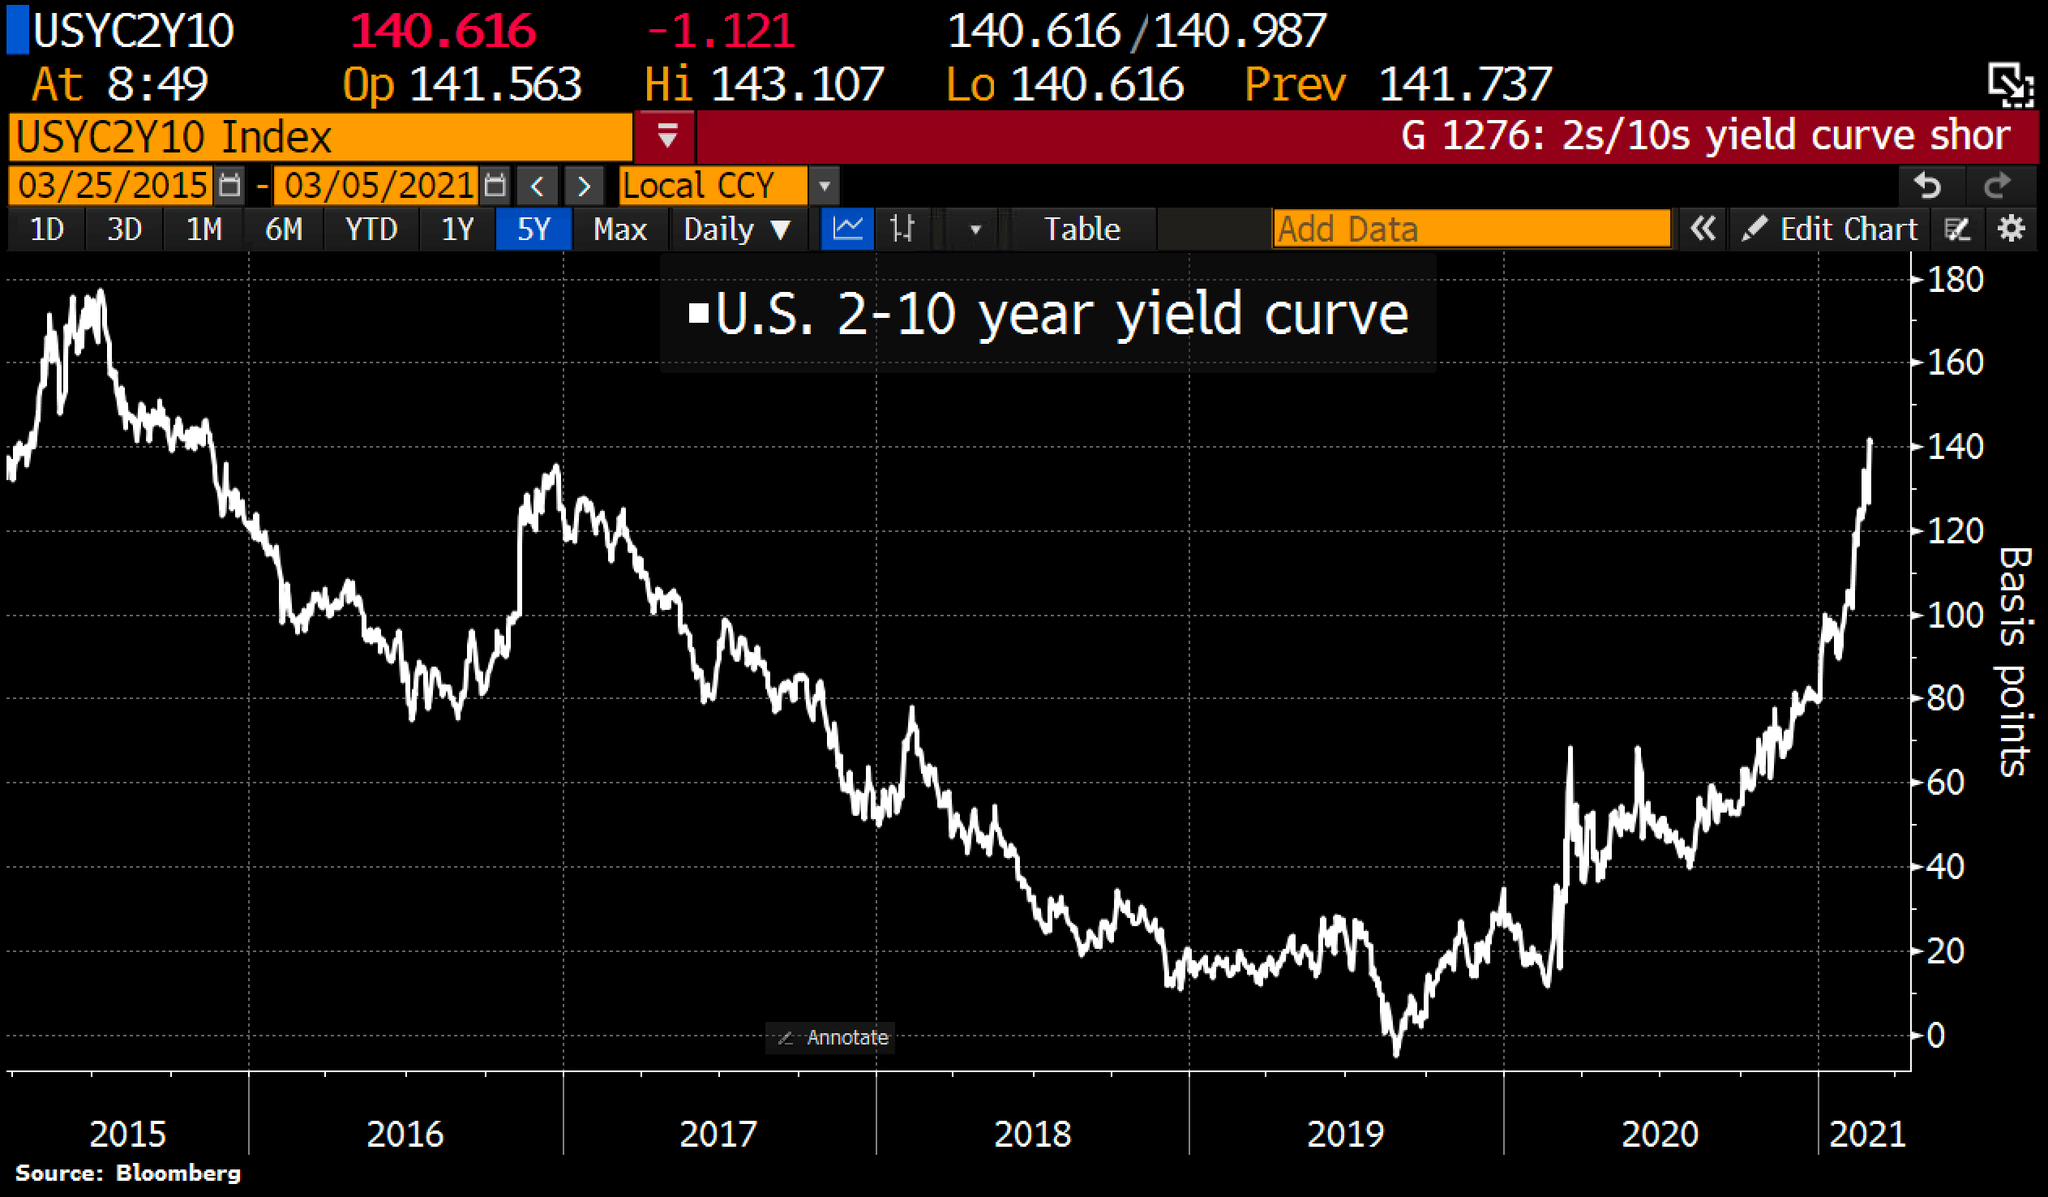 2s-10s yield spread hits highest since 2015